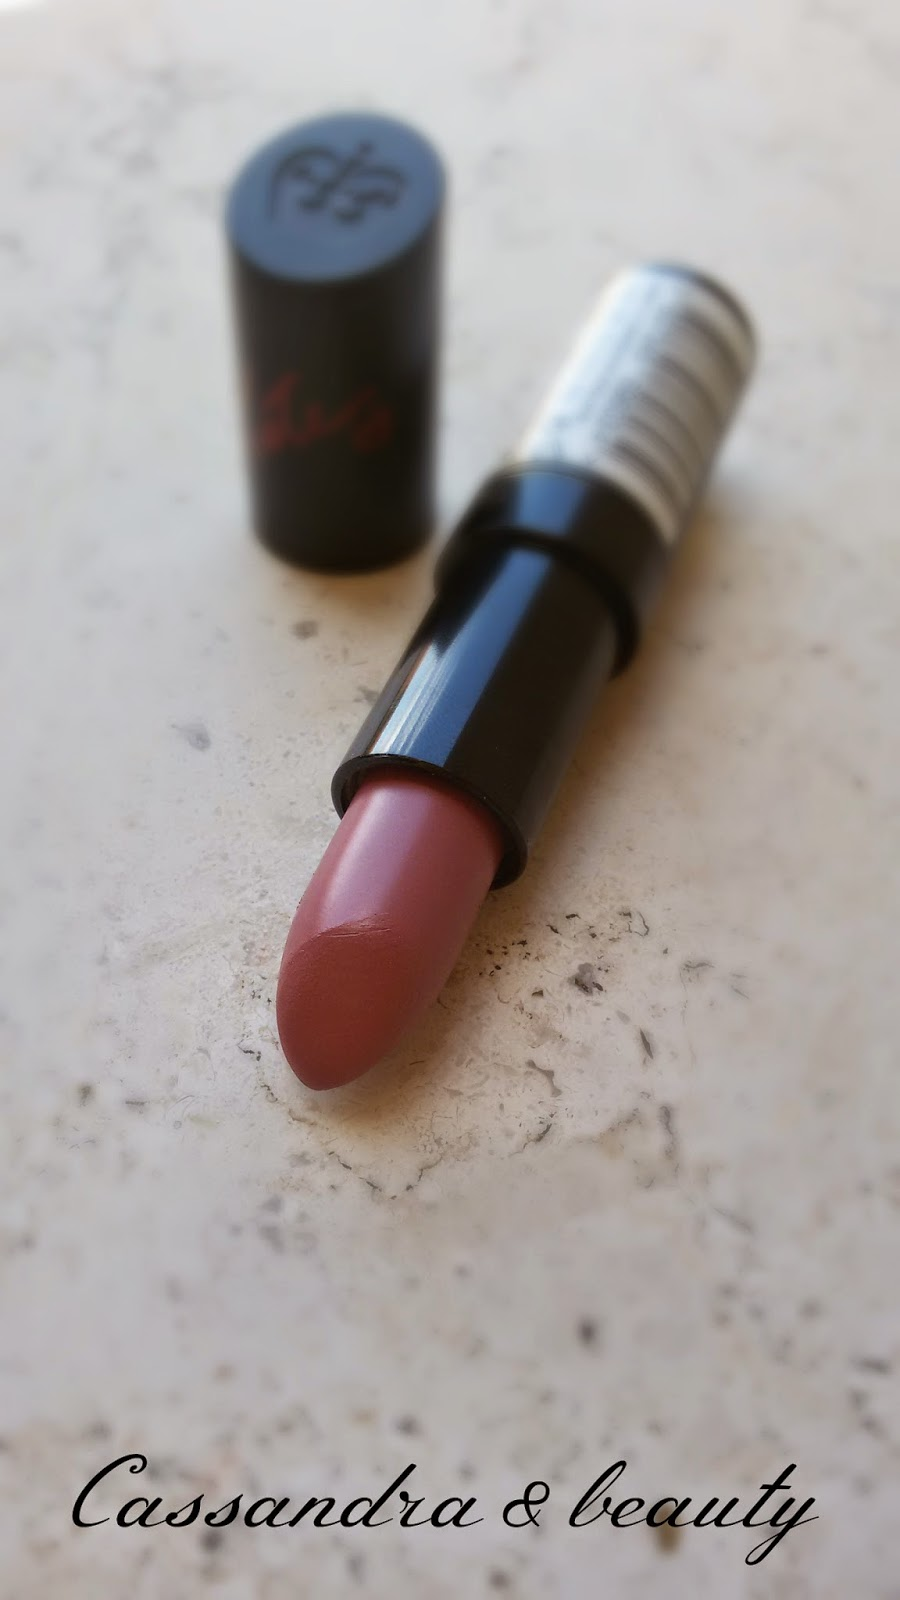 I'm in love with... #1: Lipstick!